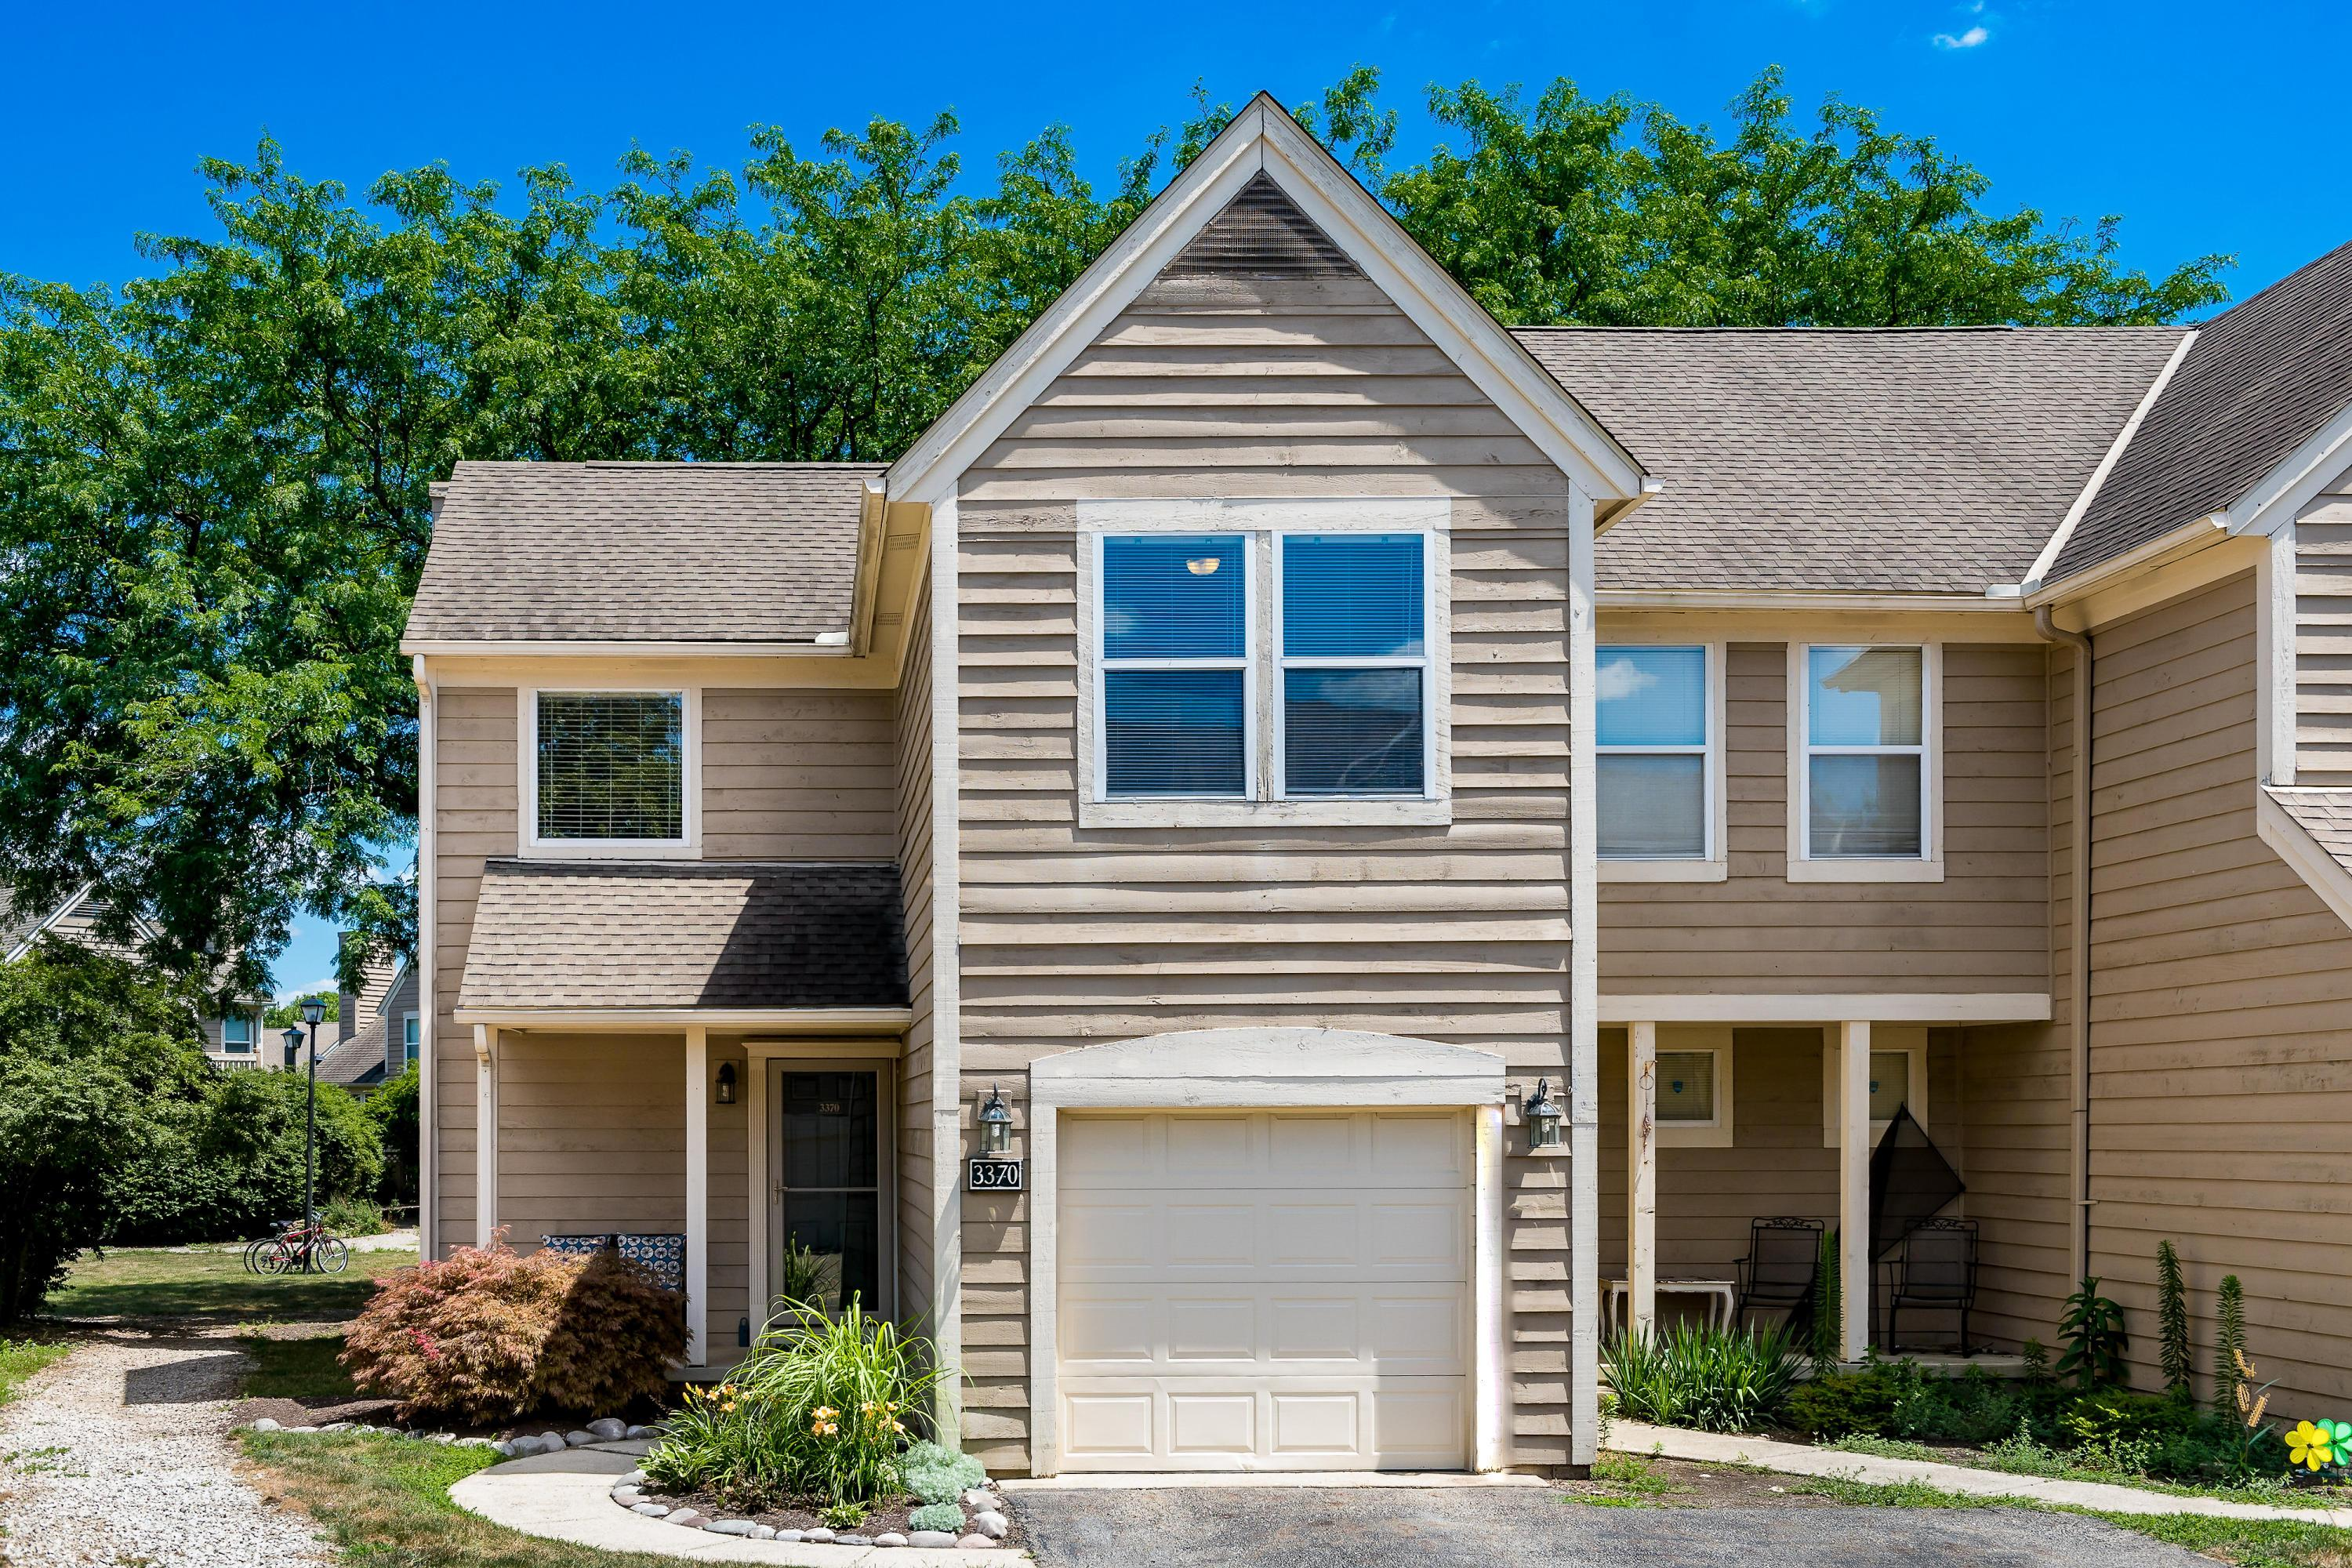 3370 Eastwoodlands Trail, Hilliard, Ohio 43026, 2 Bedrooms Bedrooms, ,3 BathroomsBathrooms,Residential,For Sale,Eastwoodlands,220025203